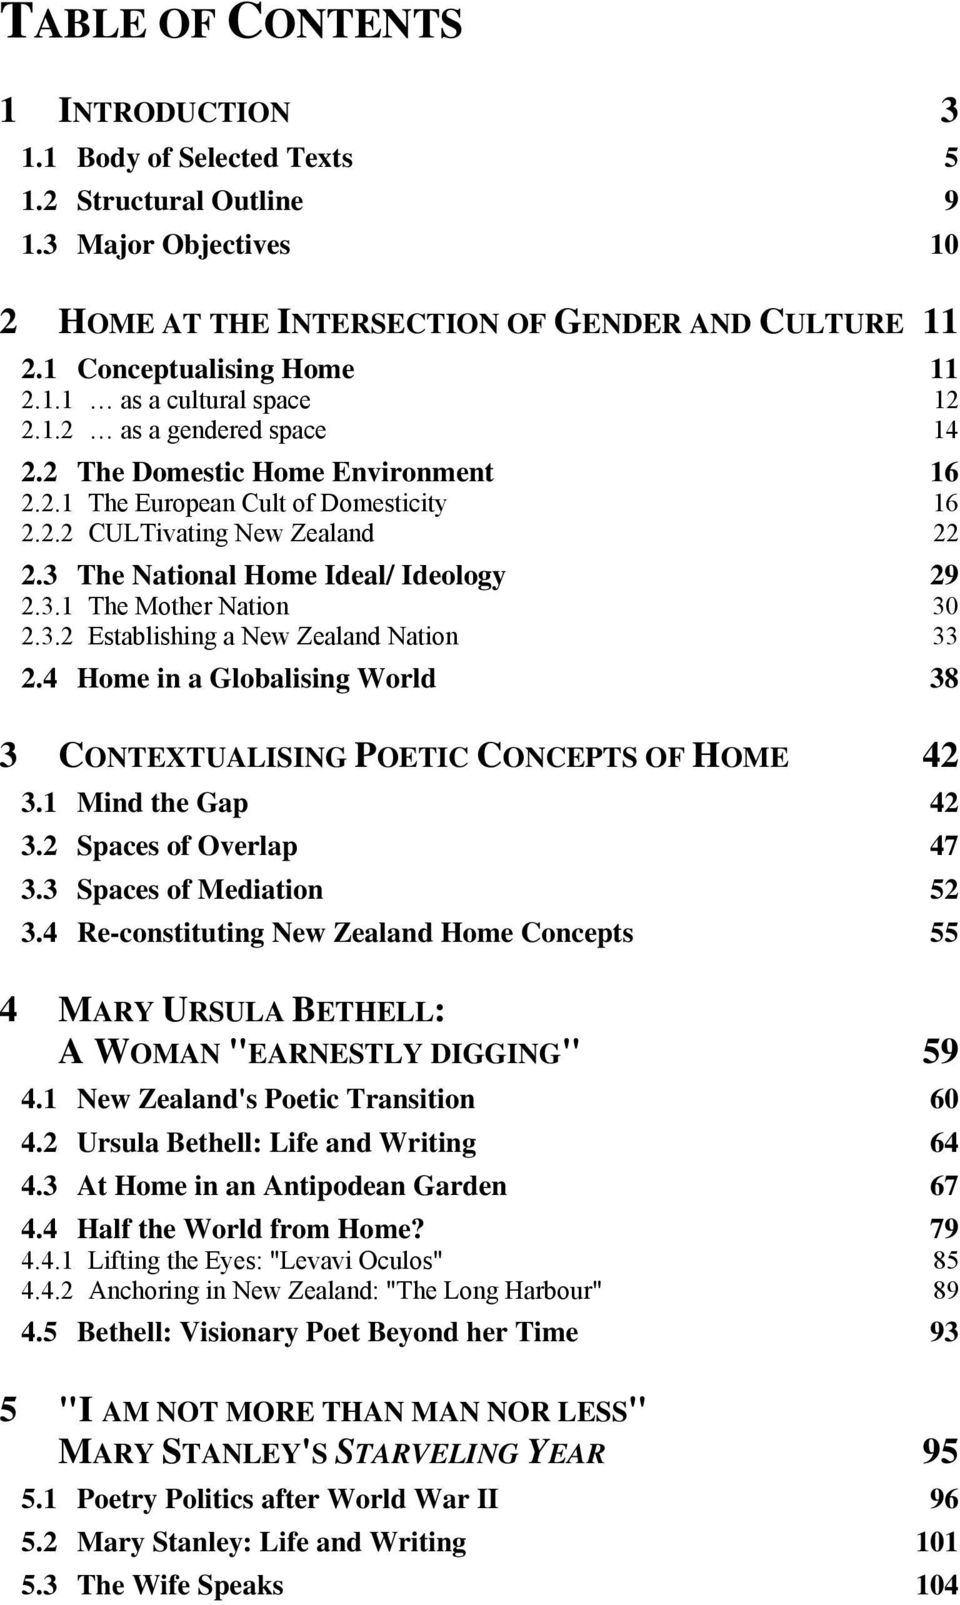 3.2 Establishing a New Zealand Nation 33 2.4 Home in a Globalising World 38 3 CONTEXTUALISING POETIC CONCEPTS OF HOME 42 3.1 Mind the Gap 42 3.2 Spaces of Overlap 47 3.3 Spaces of Mediation 52 3.